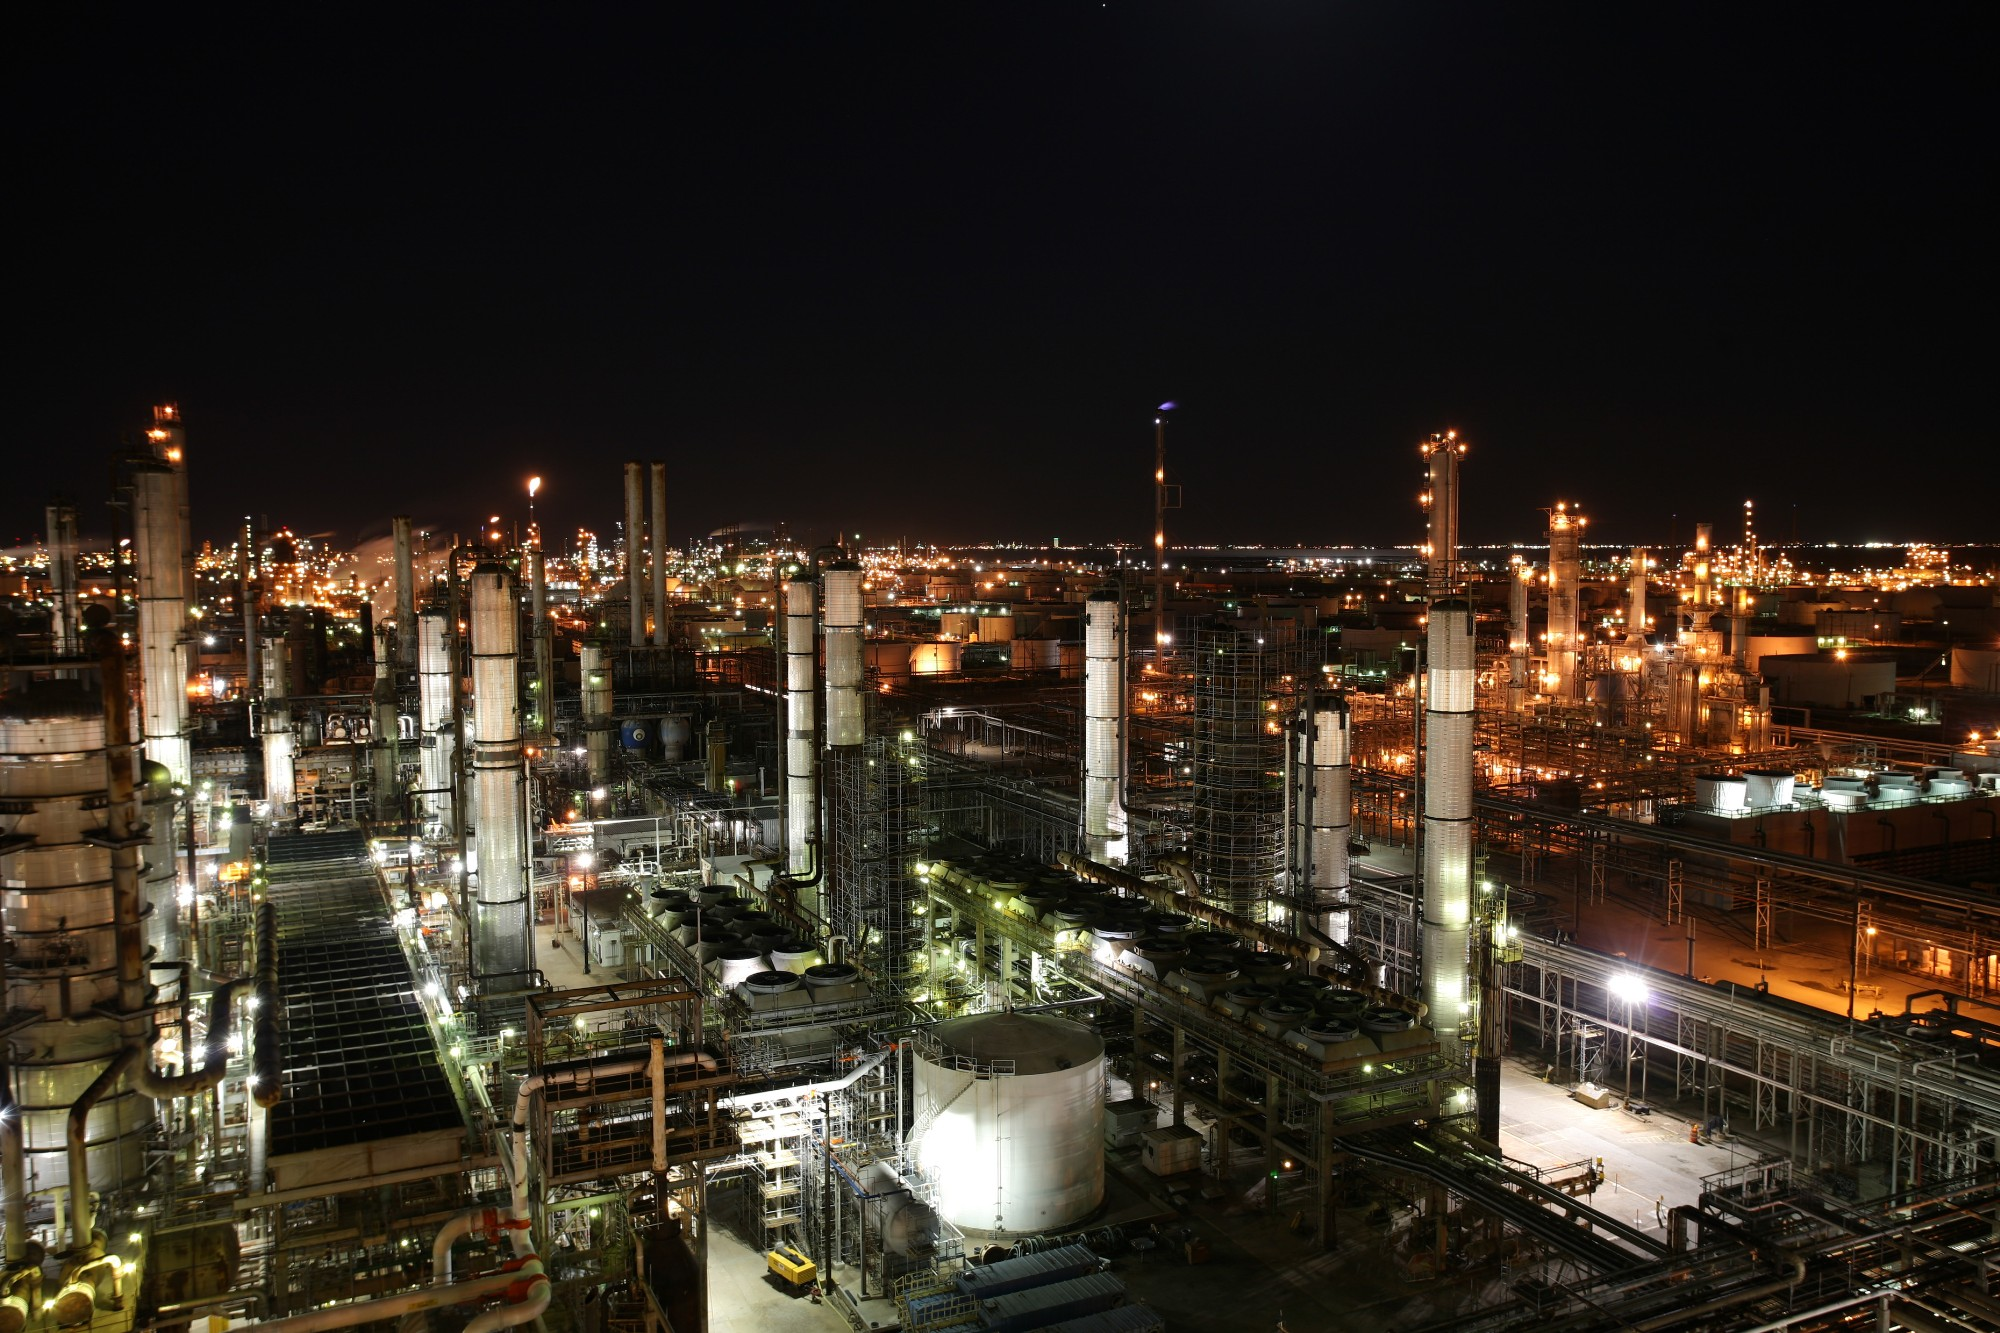 Background Wallpaper Quotes Download Oil Refinery Wallpaper Gallery